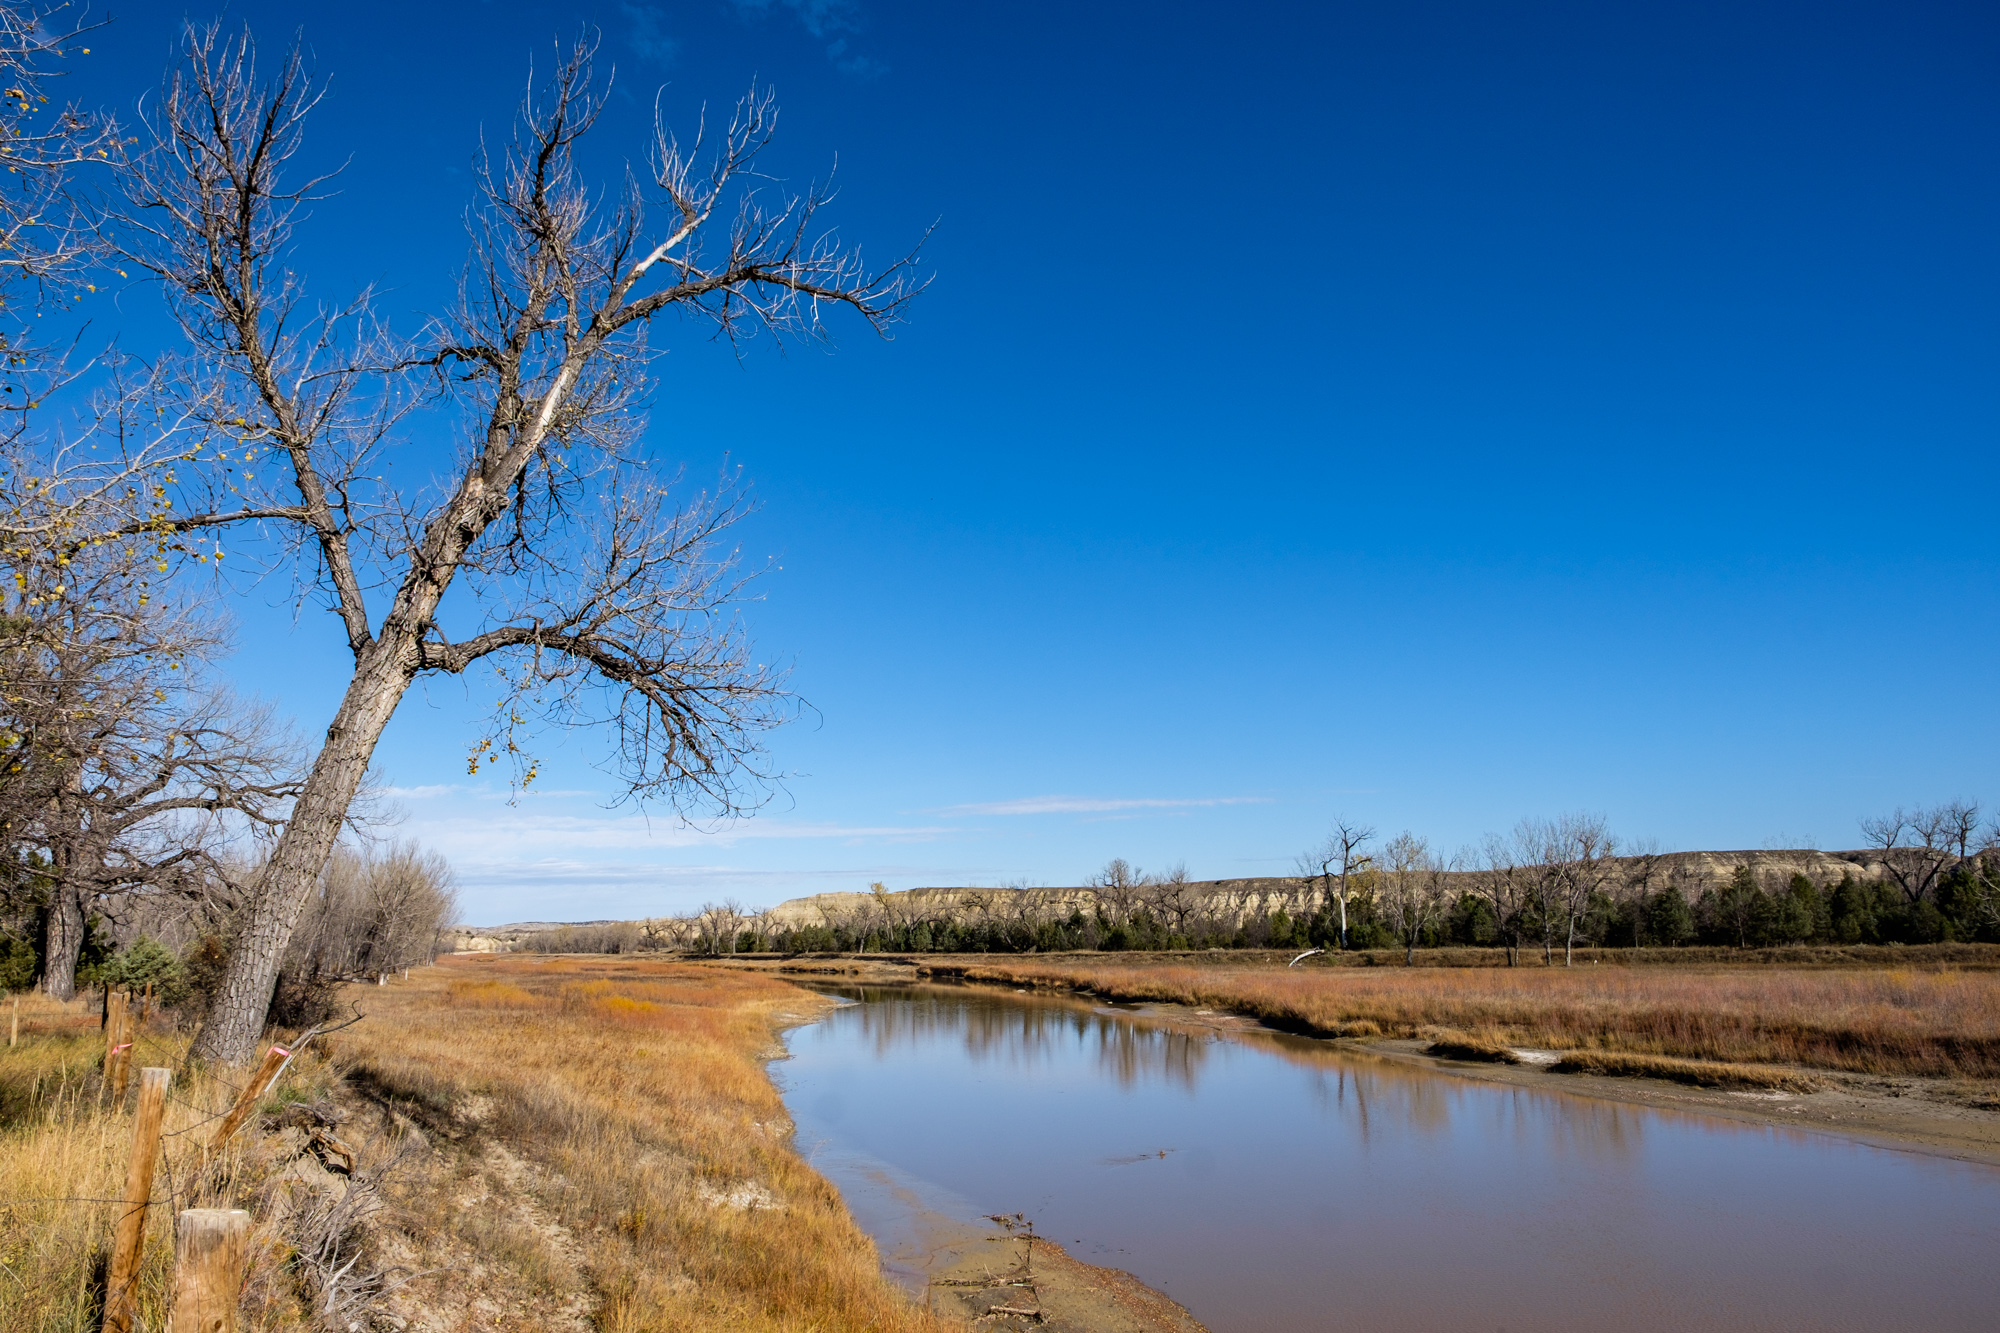 The banks of the Little Missouri River next to the site where Elkhorn Ranch once stood.